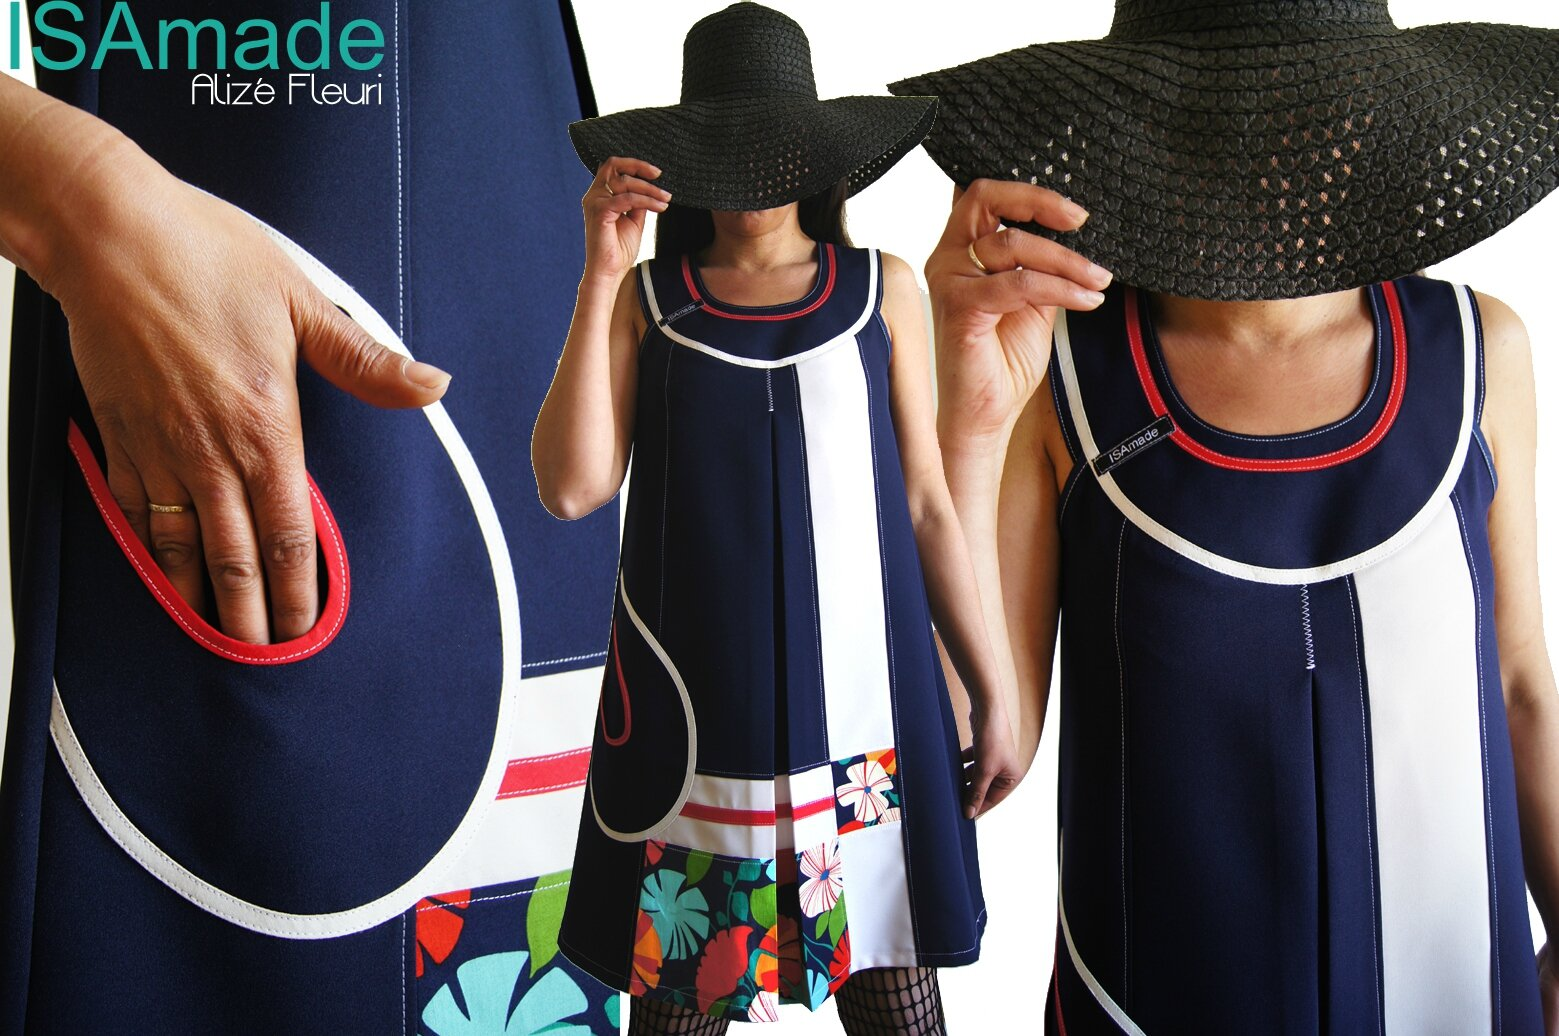 MOD 420A robe bleu marine blanc rouge fleurie chic habillée made in France graphique 70's